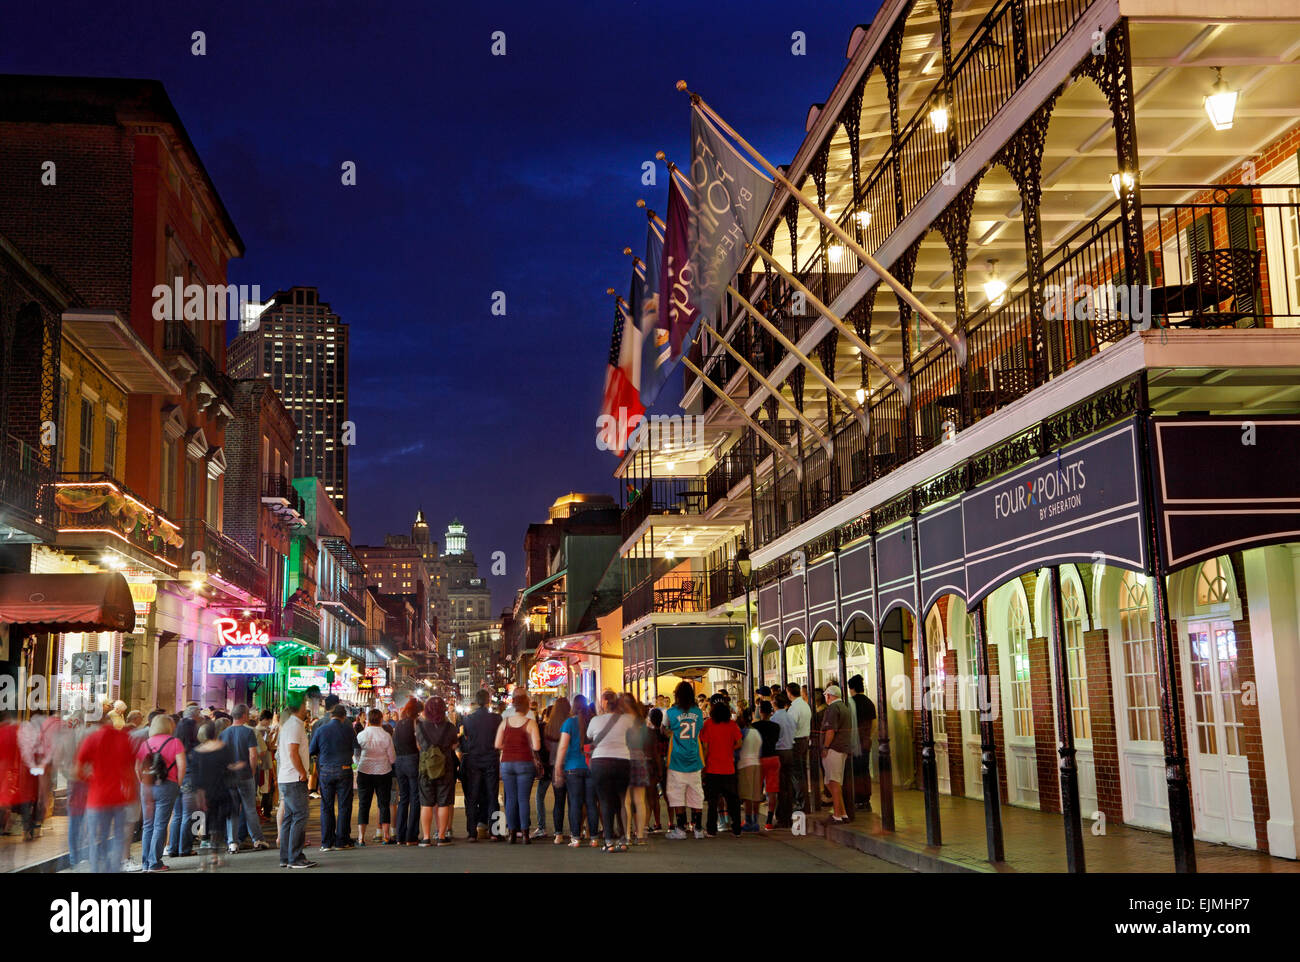 Hotels On Bourbon Street New Orleans